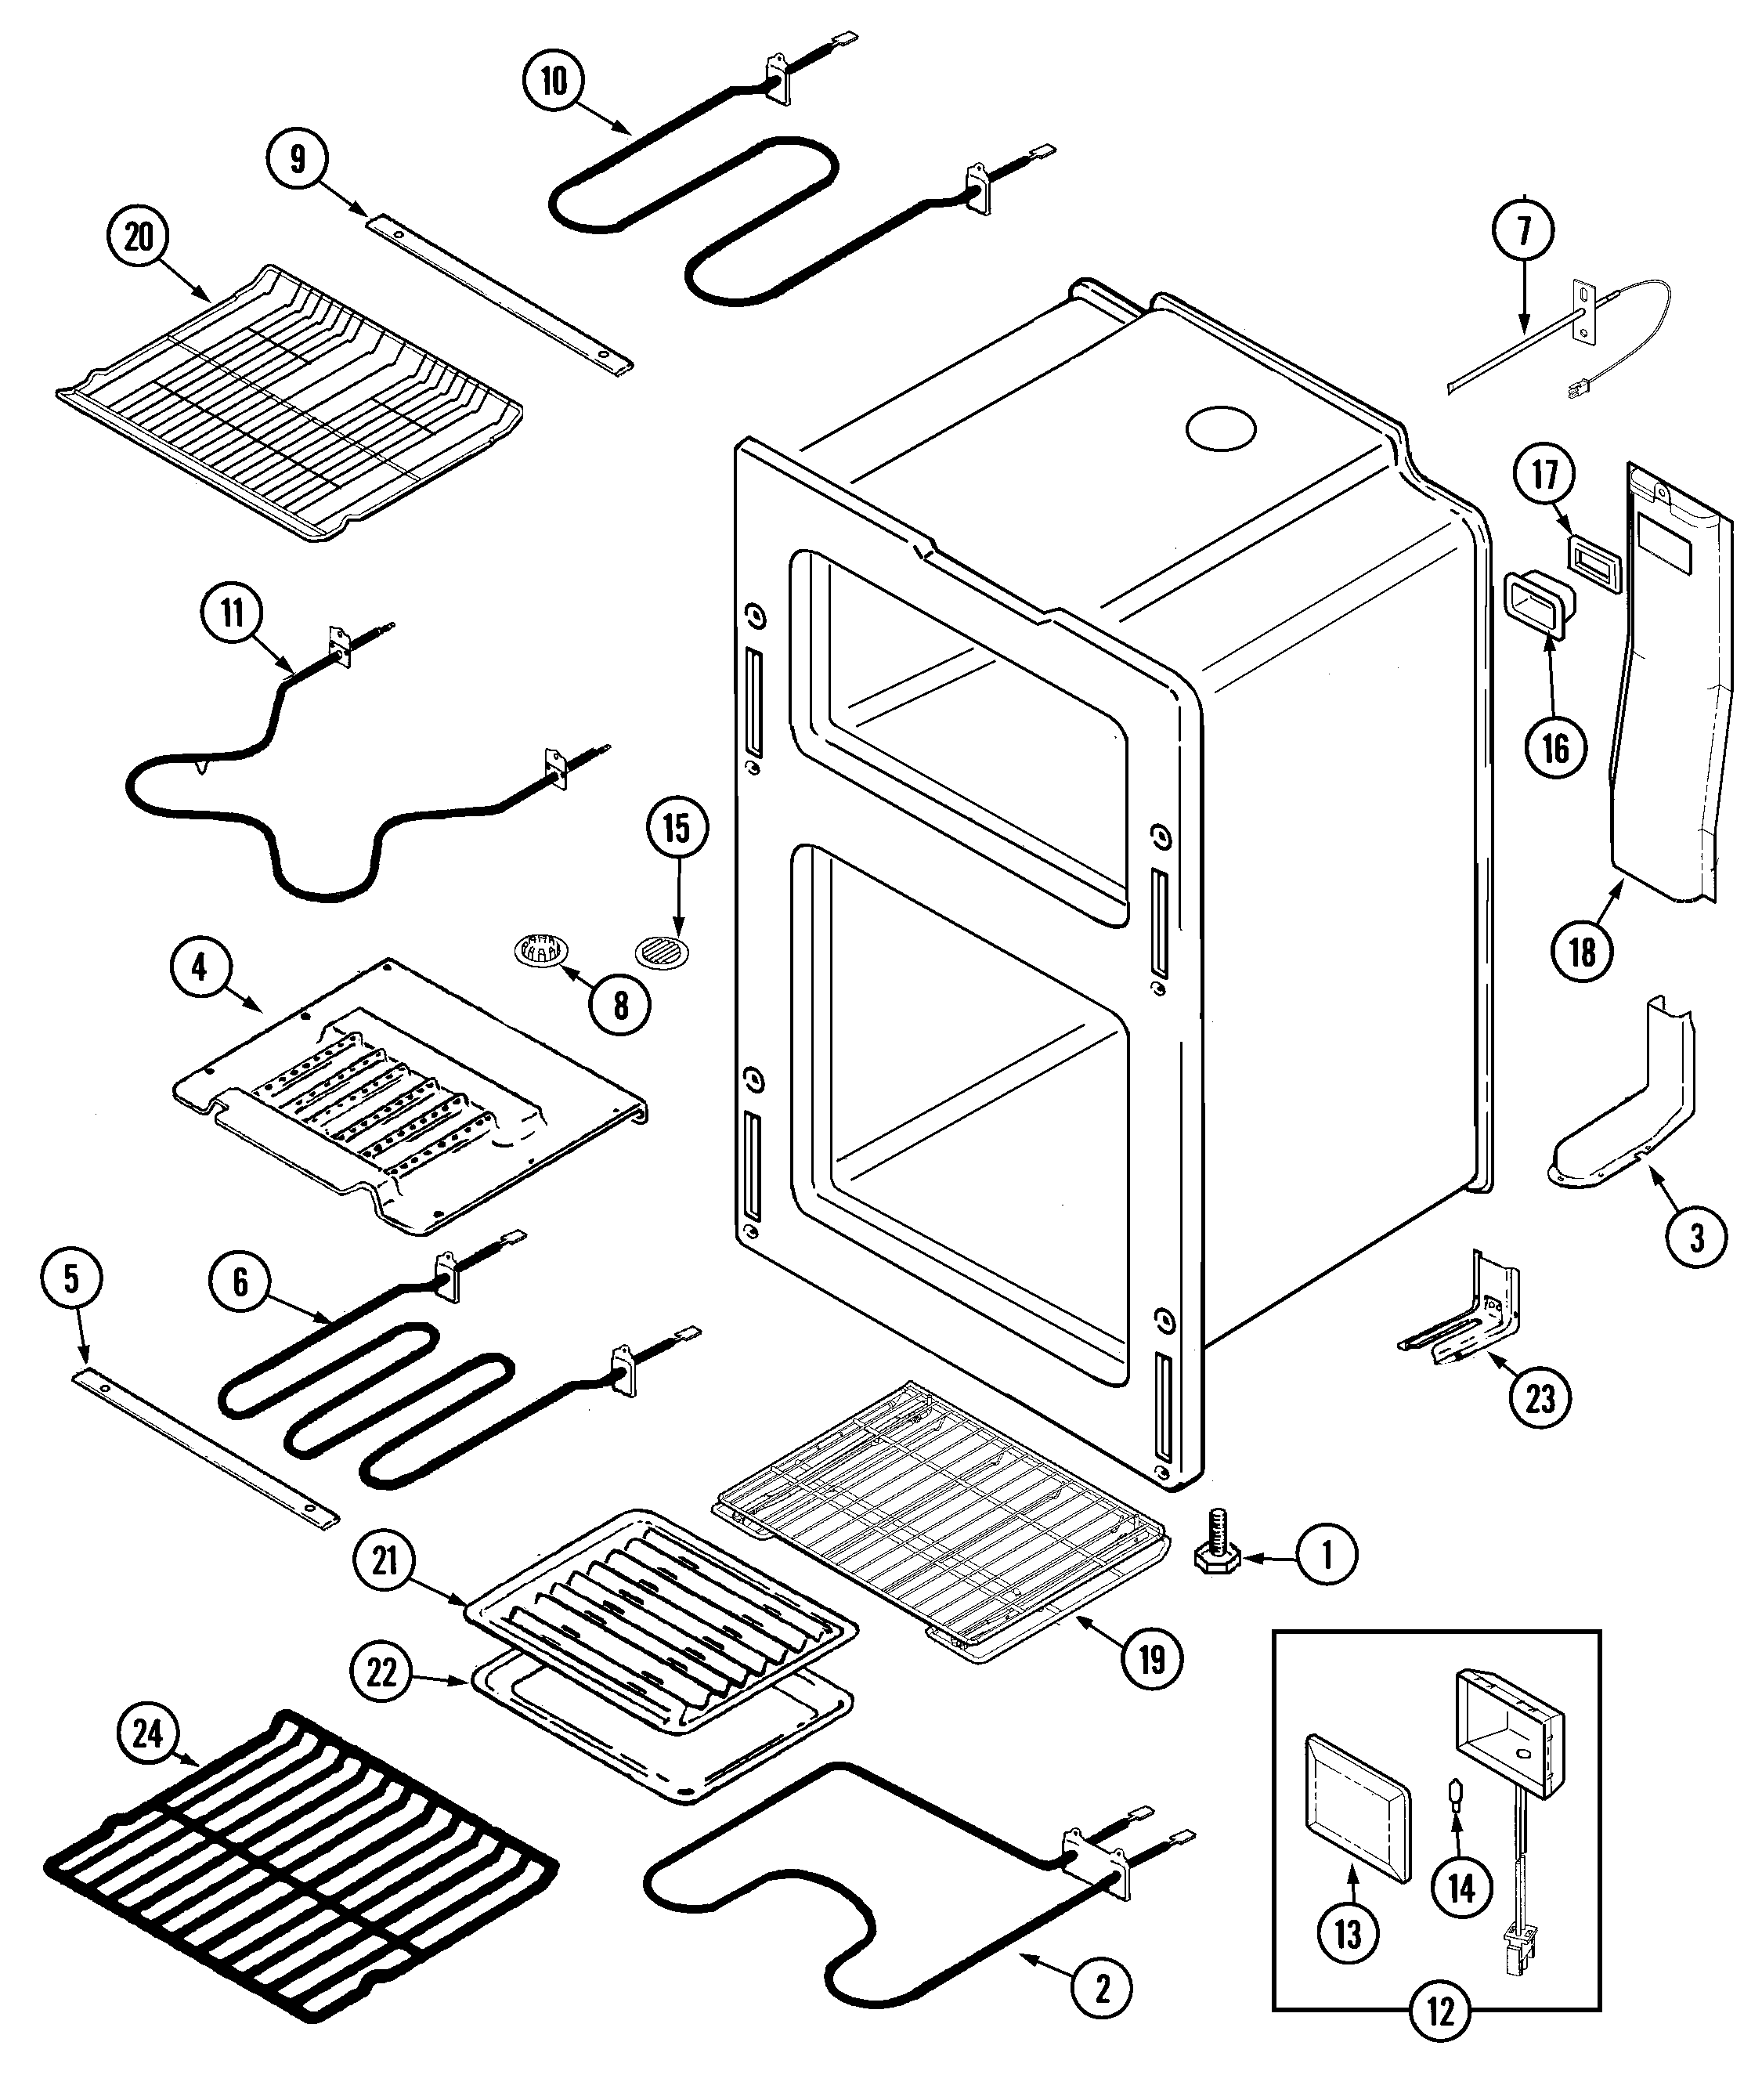 Admirable Machine Parts Diagram In Addition Maytag Gemini Range Parts Diagram Wiring 101 Capemaxxcnl